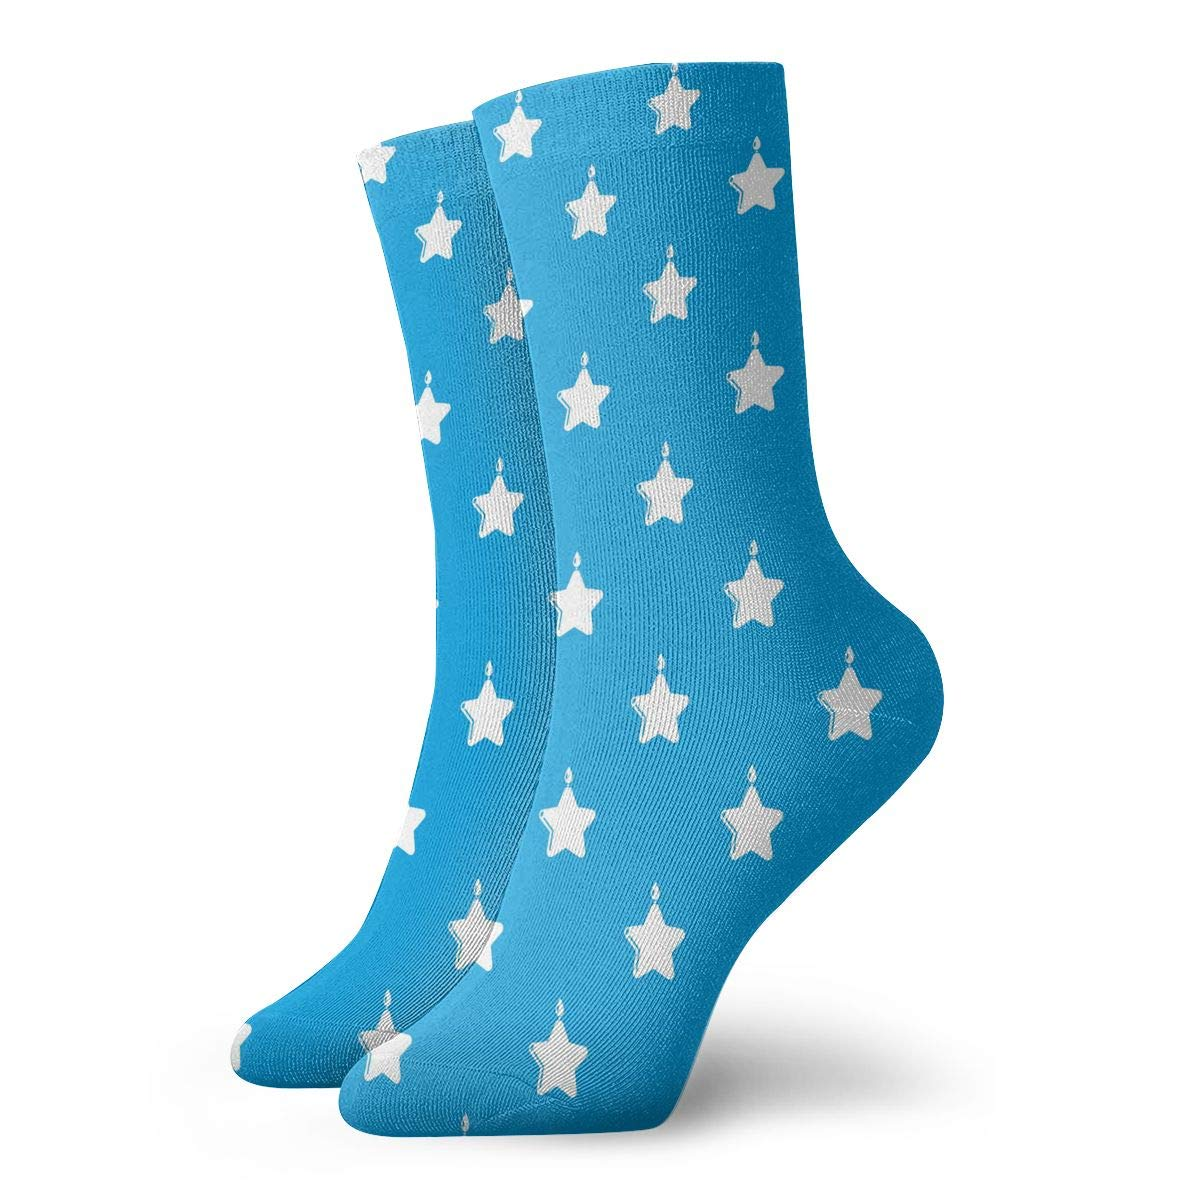 TAOMAP89 Candle Star Pattern Compression Ankle Socks for Women and Men No Show Diabetic Socks Athletic Best for Flight Football